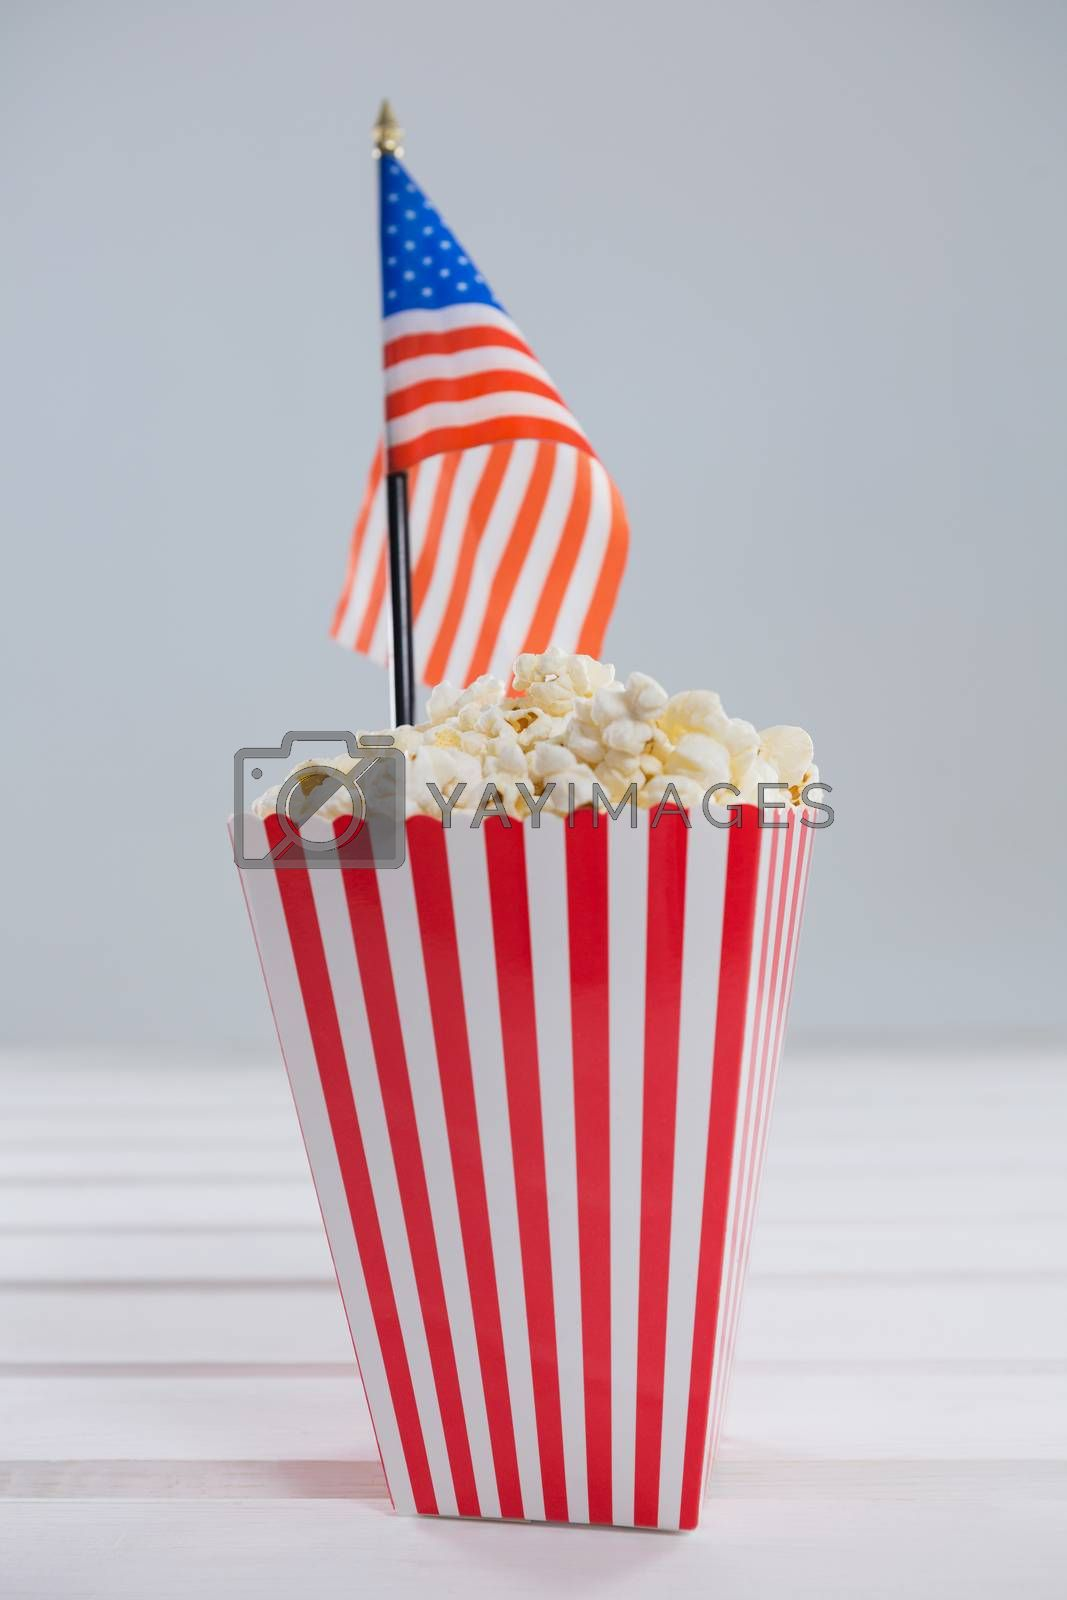 Royalty free image of Close-up of popcorn with 4th july theme by Wavebreakmedia